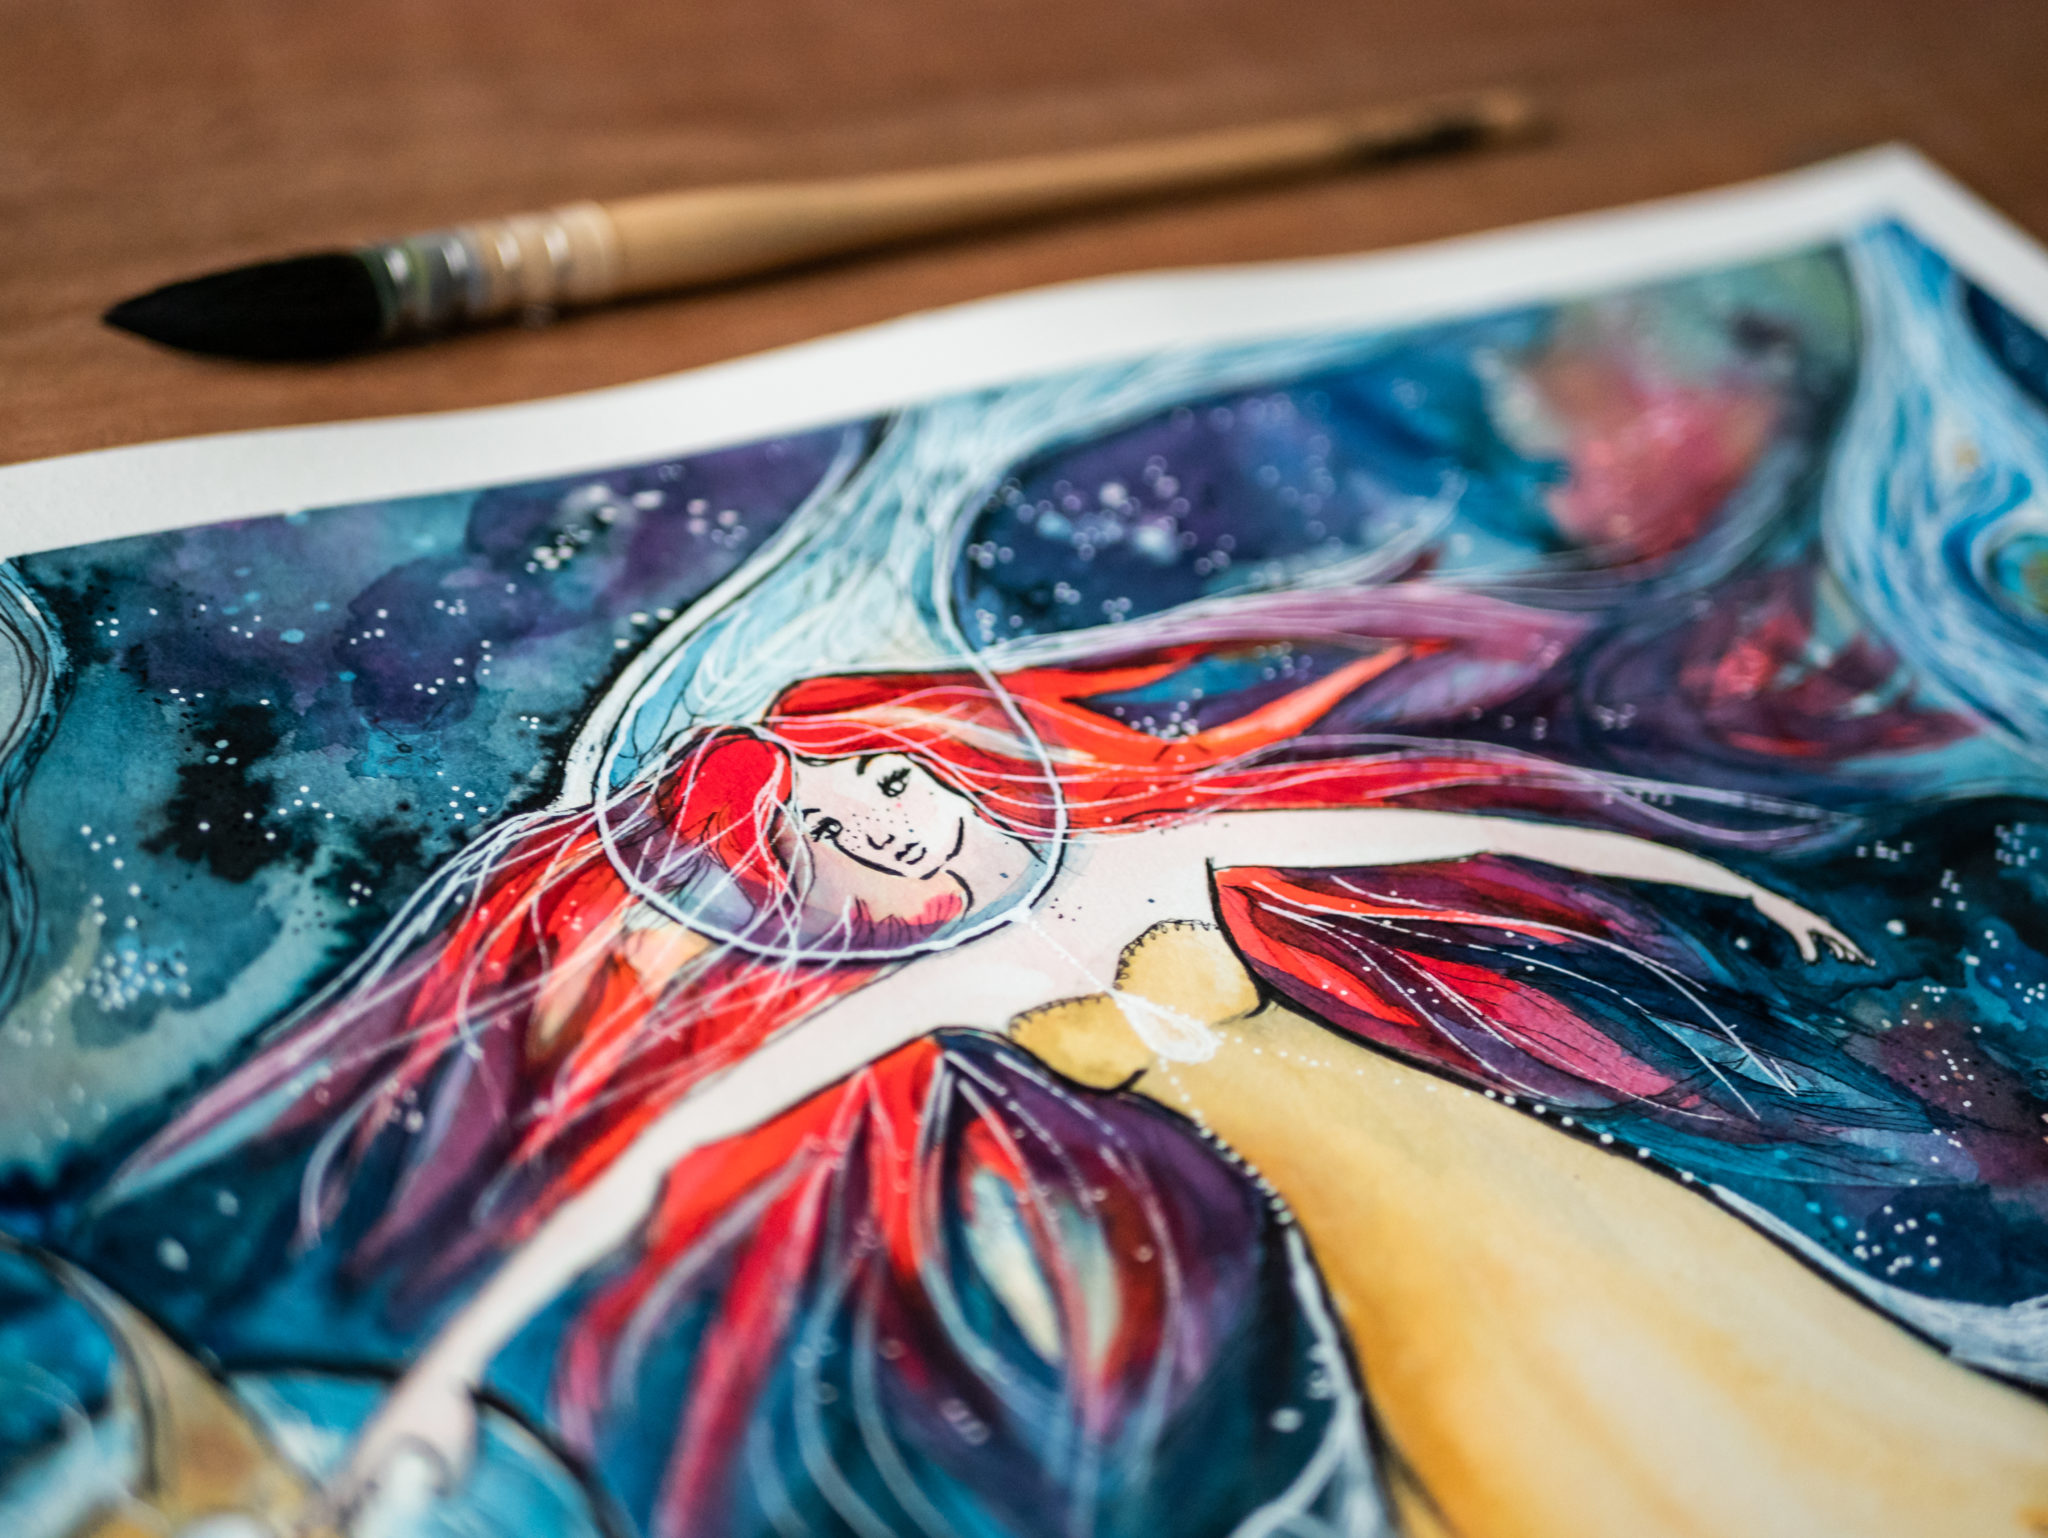 Ether, illustration and painting, very spatial art creation by Maïm Garnier. Ink and watercolour. Star for Inktober 2018. #inktober #inktober2018 #characterdesign #illustrationartists #watercolourartist #illustrationcharacterdesign #illustrationart #artinspiration #MaimGarnier #creativeprocess #inktoberart #star #spaceart #spacepainting #galaxyart #spaceillustration #spacedrawing #galaxypainting